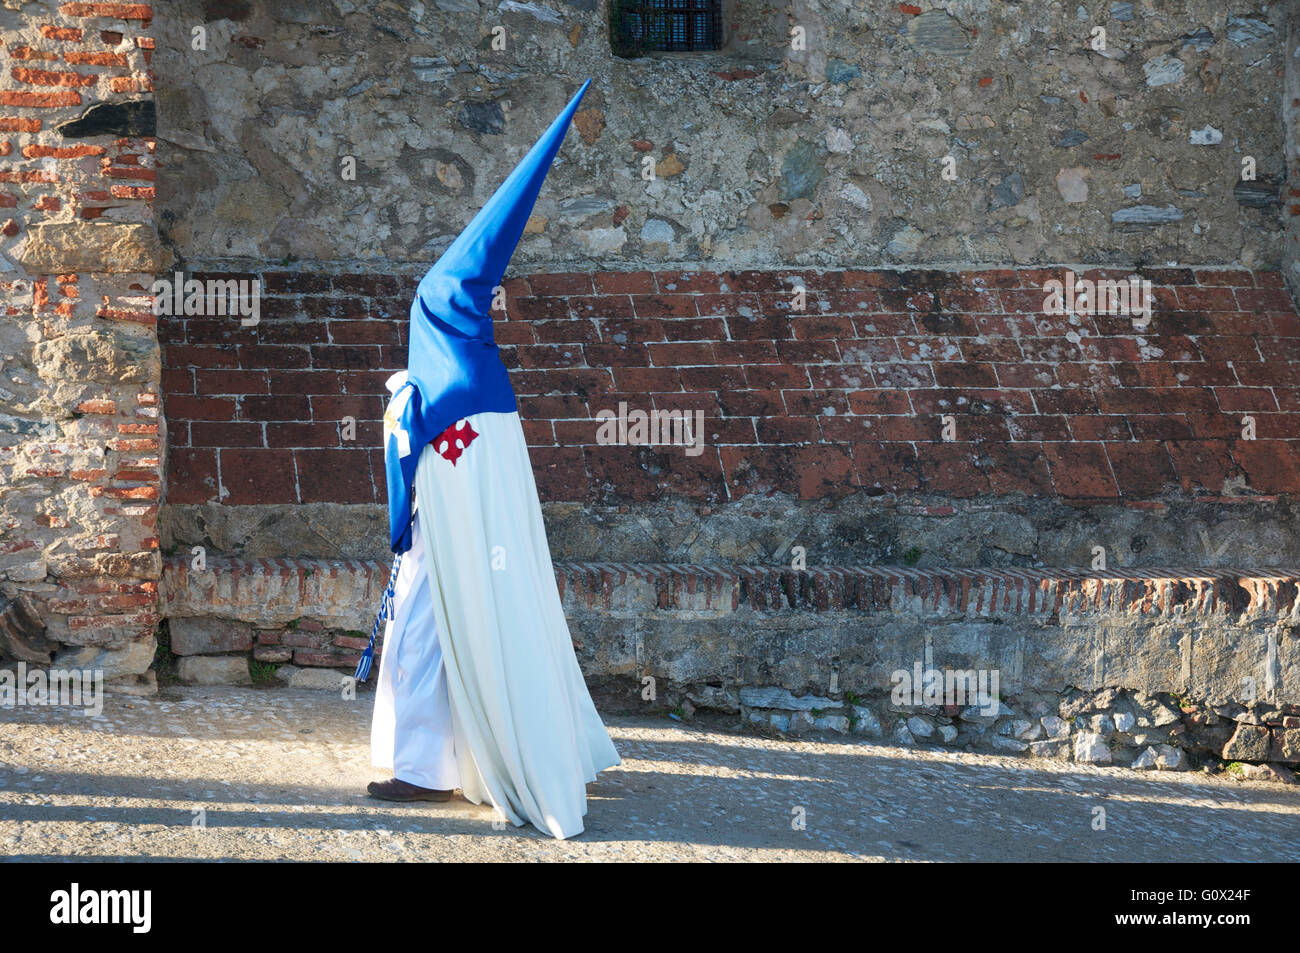 Penitents gathering for Semana Santa parade from church back into town. - Stock Image